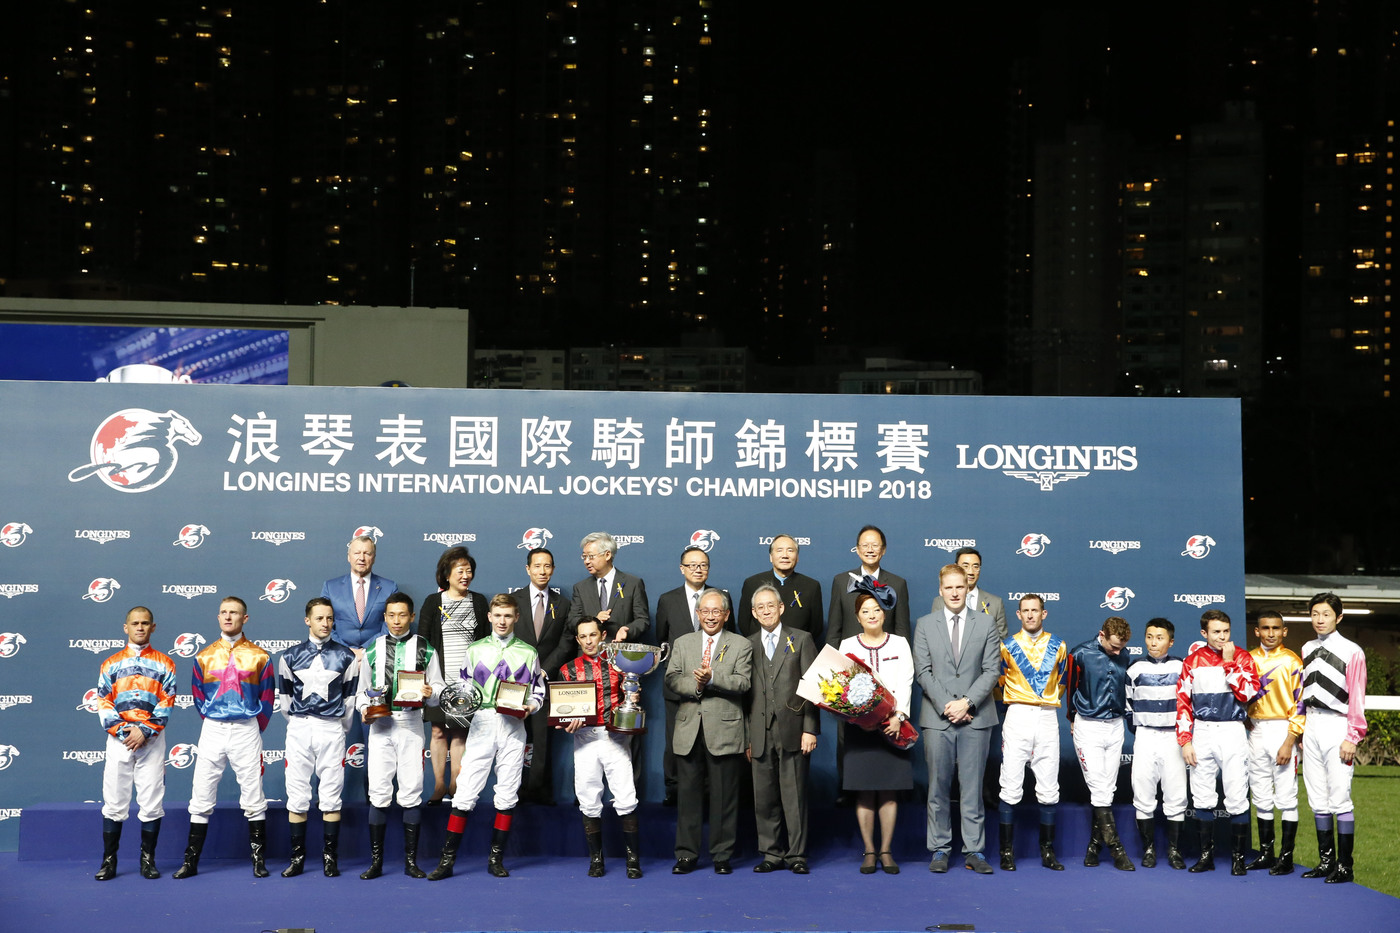 Longines Flat Racing Event: Silvestre de Sousa emerges victorious in the Longines International Jockeys' Championship in Hong Kong 7